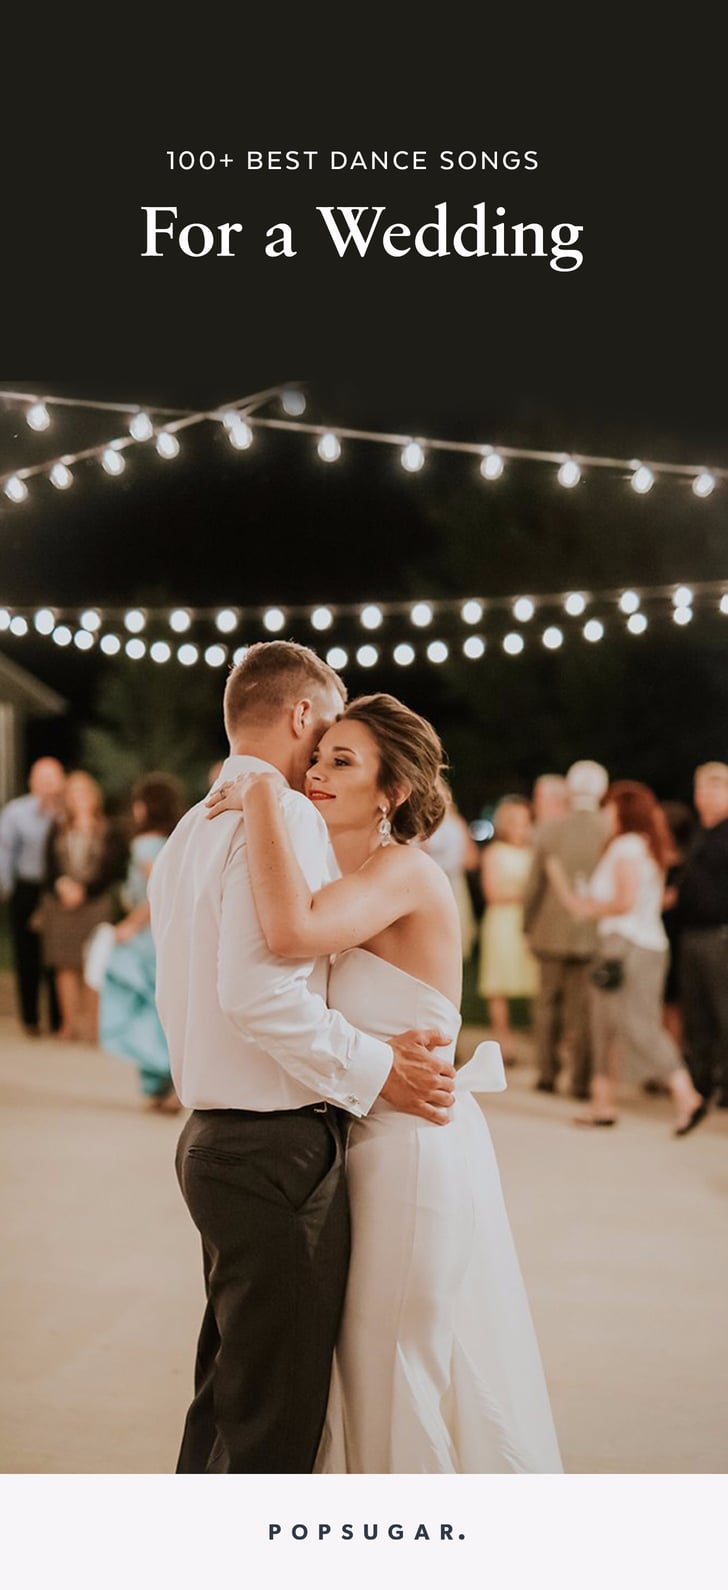 Best Wedding Dance Songs.Best Dance Songs For A Wedding Popsugar Entertainment